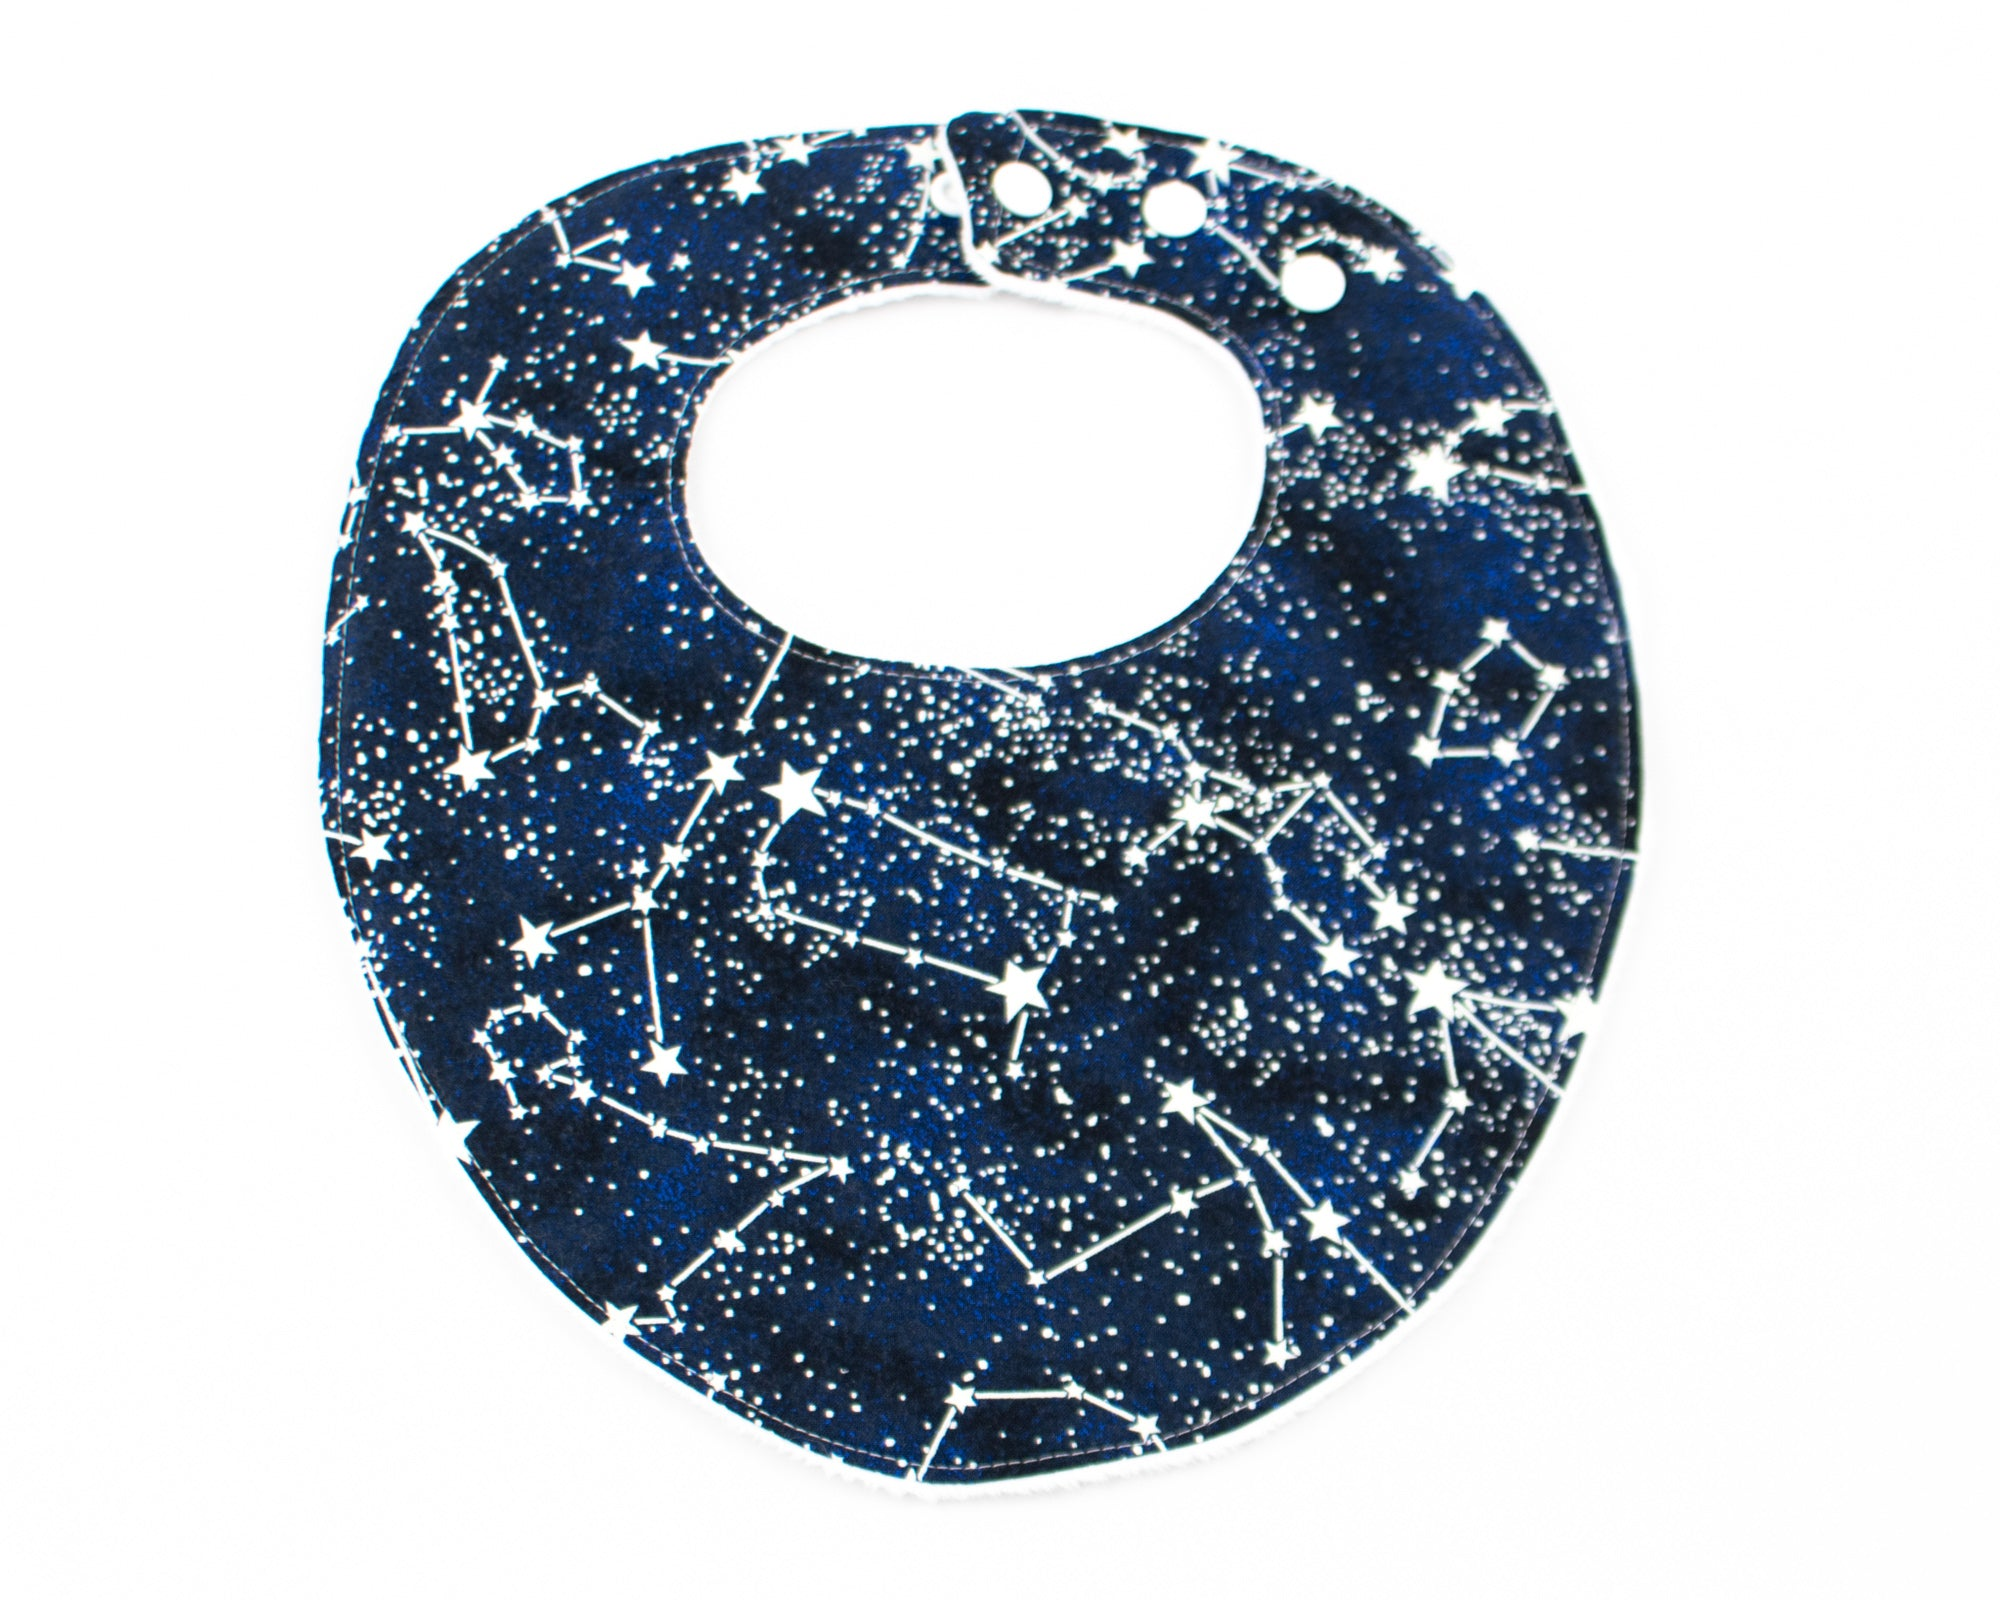 Glow in the Dark Constellations Bib